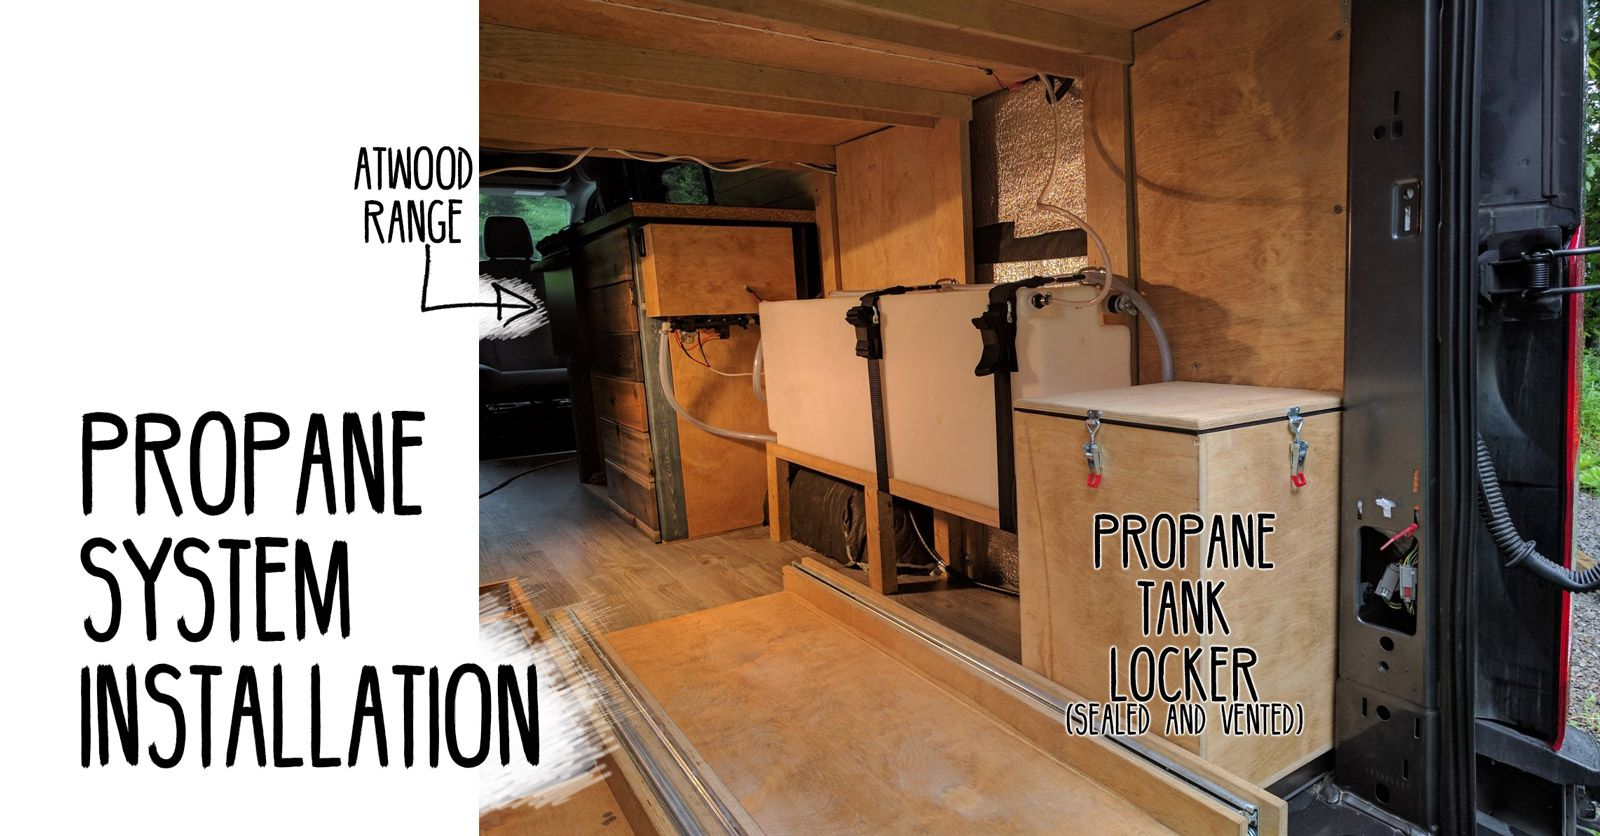 Propane System Installation Of Our Ford Transit Campervan Conversion Materials Tools Cost And